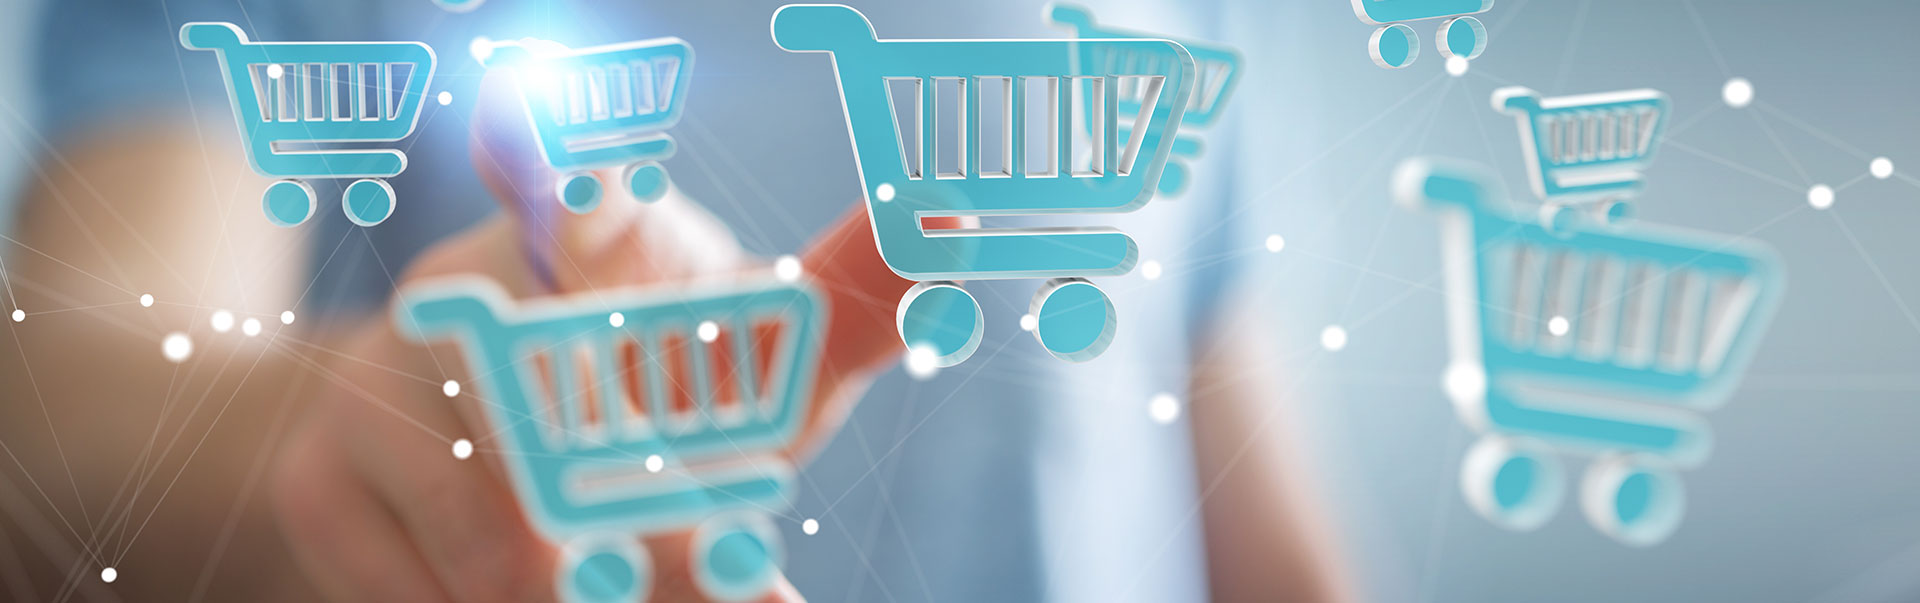 We have a variety of e-commerce solutions for your business.